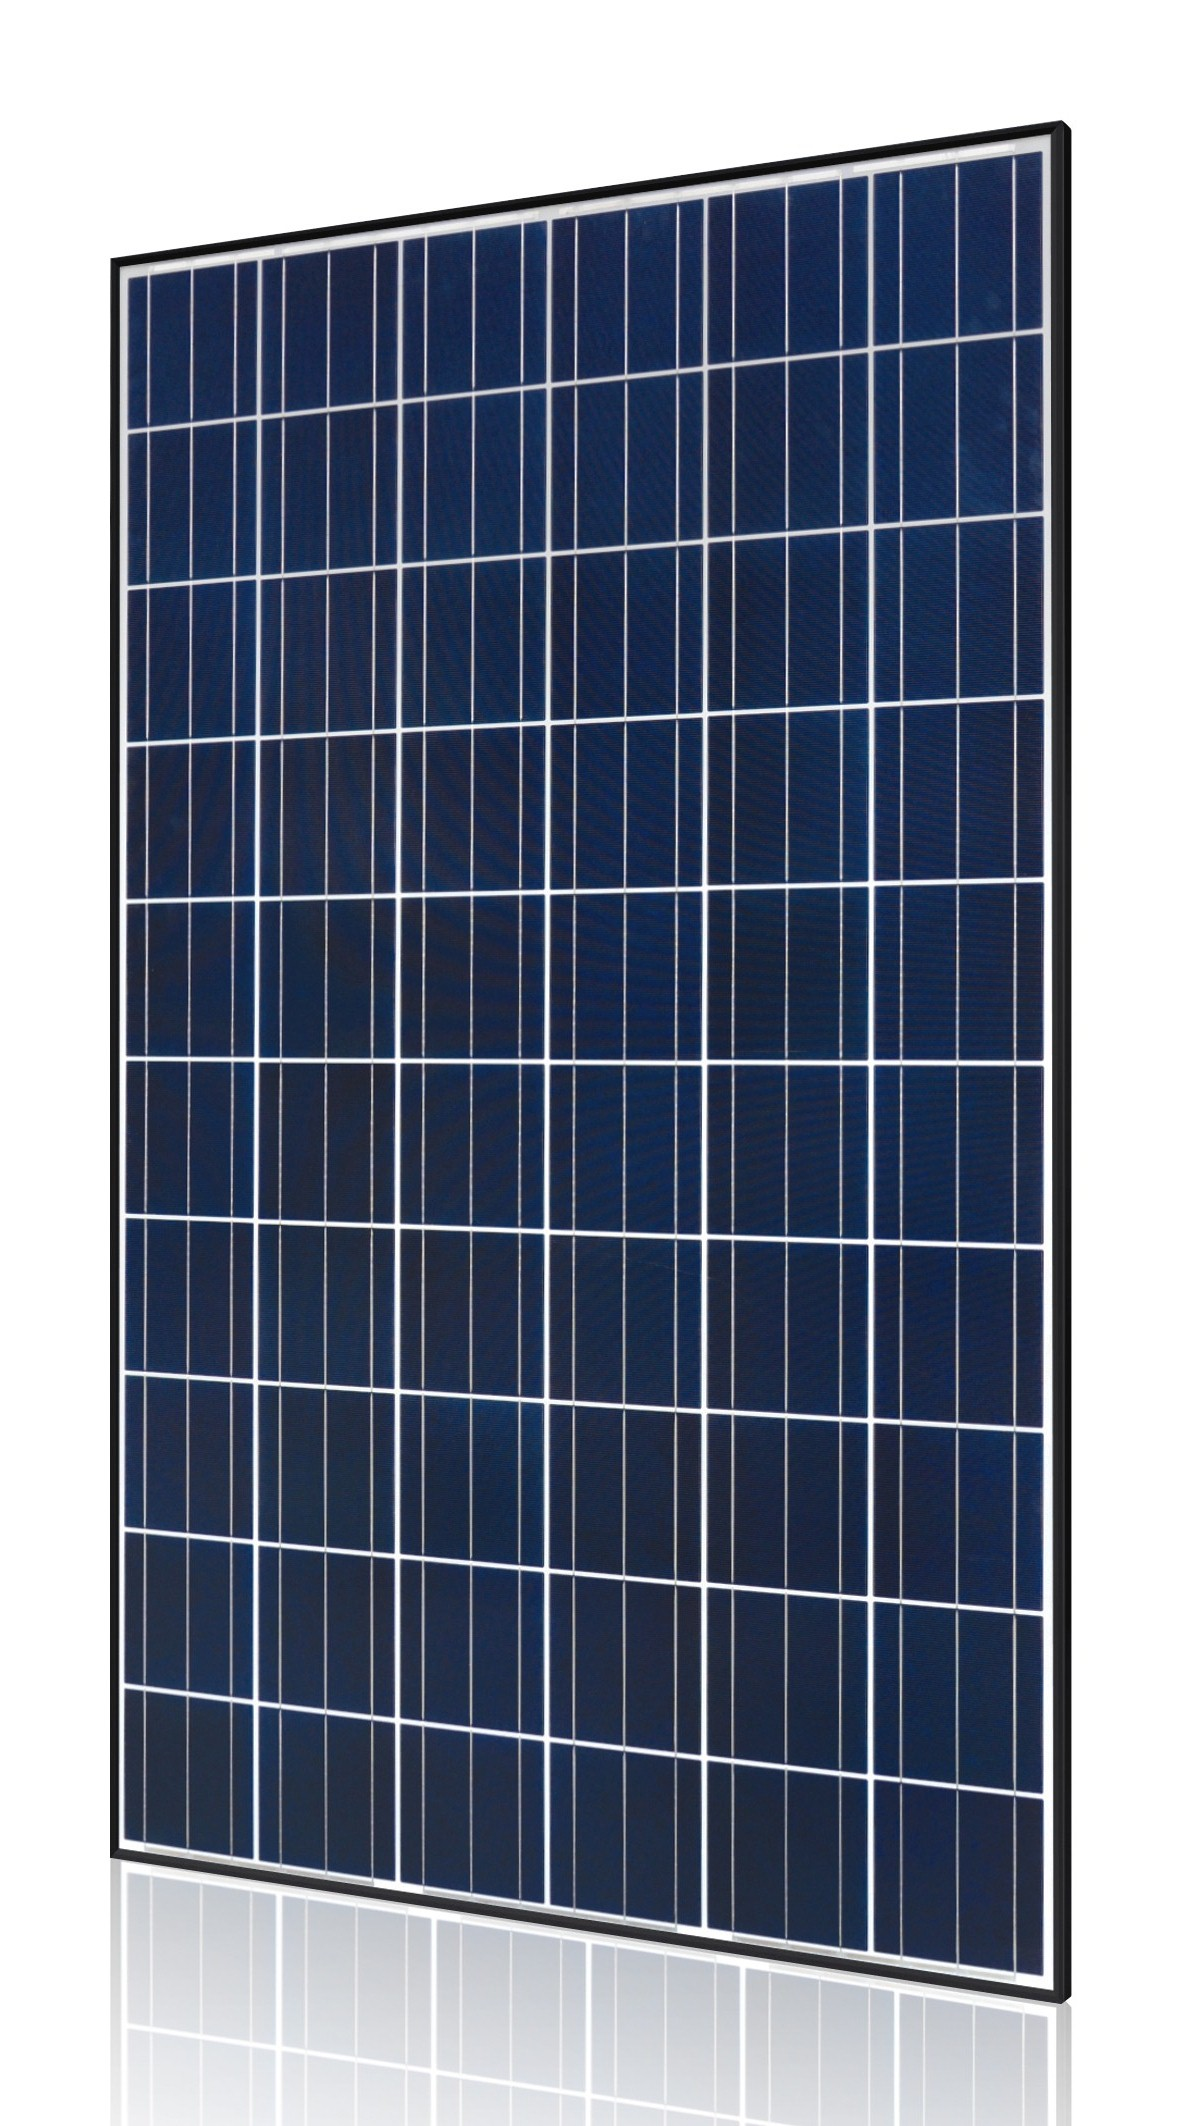 HYUNDAI, HIS-M260RG(BF), PV MODULES, 260W, BLACK FRAME, MC4-TYPE, KOREA